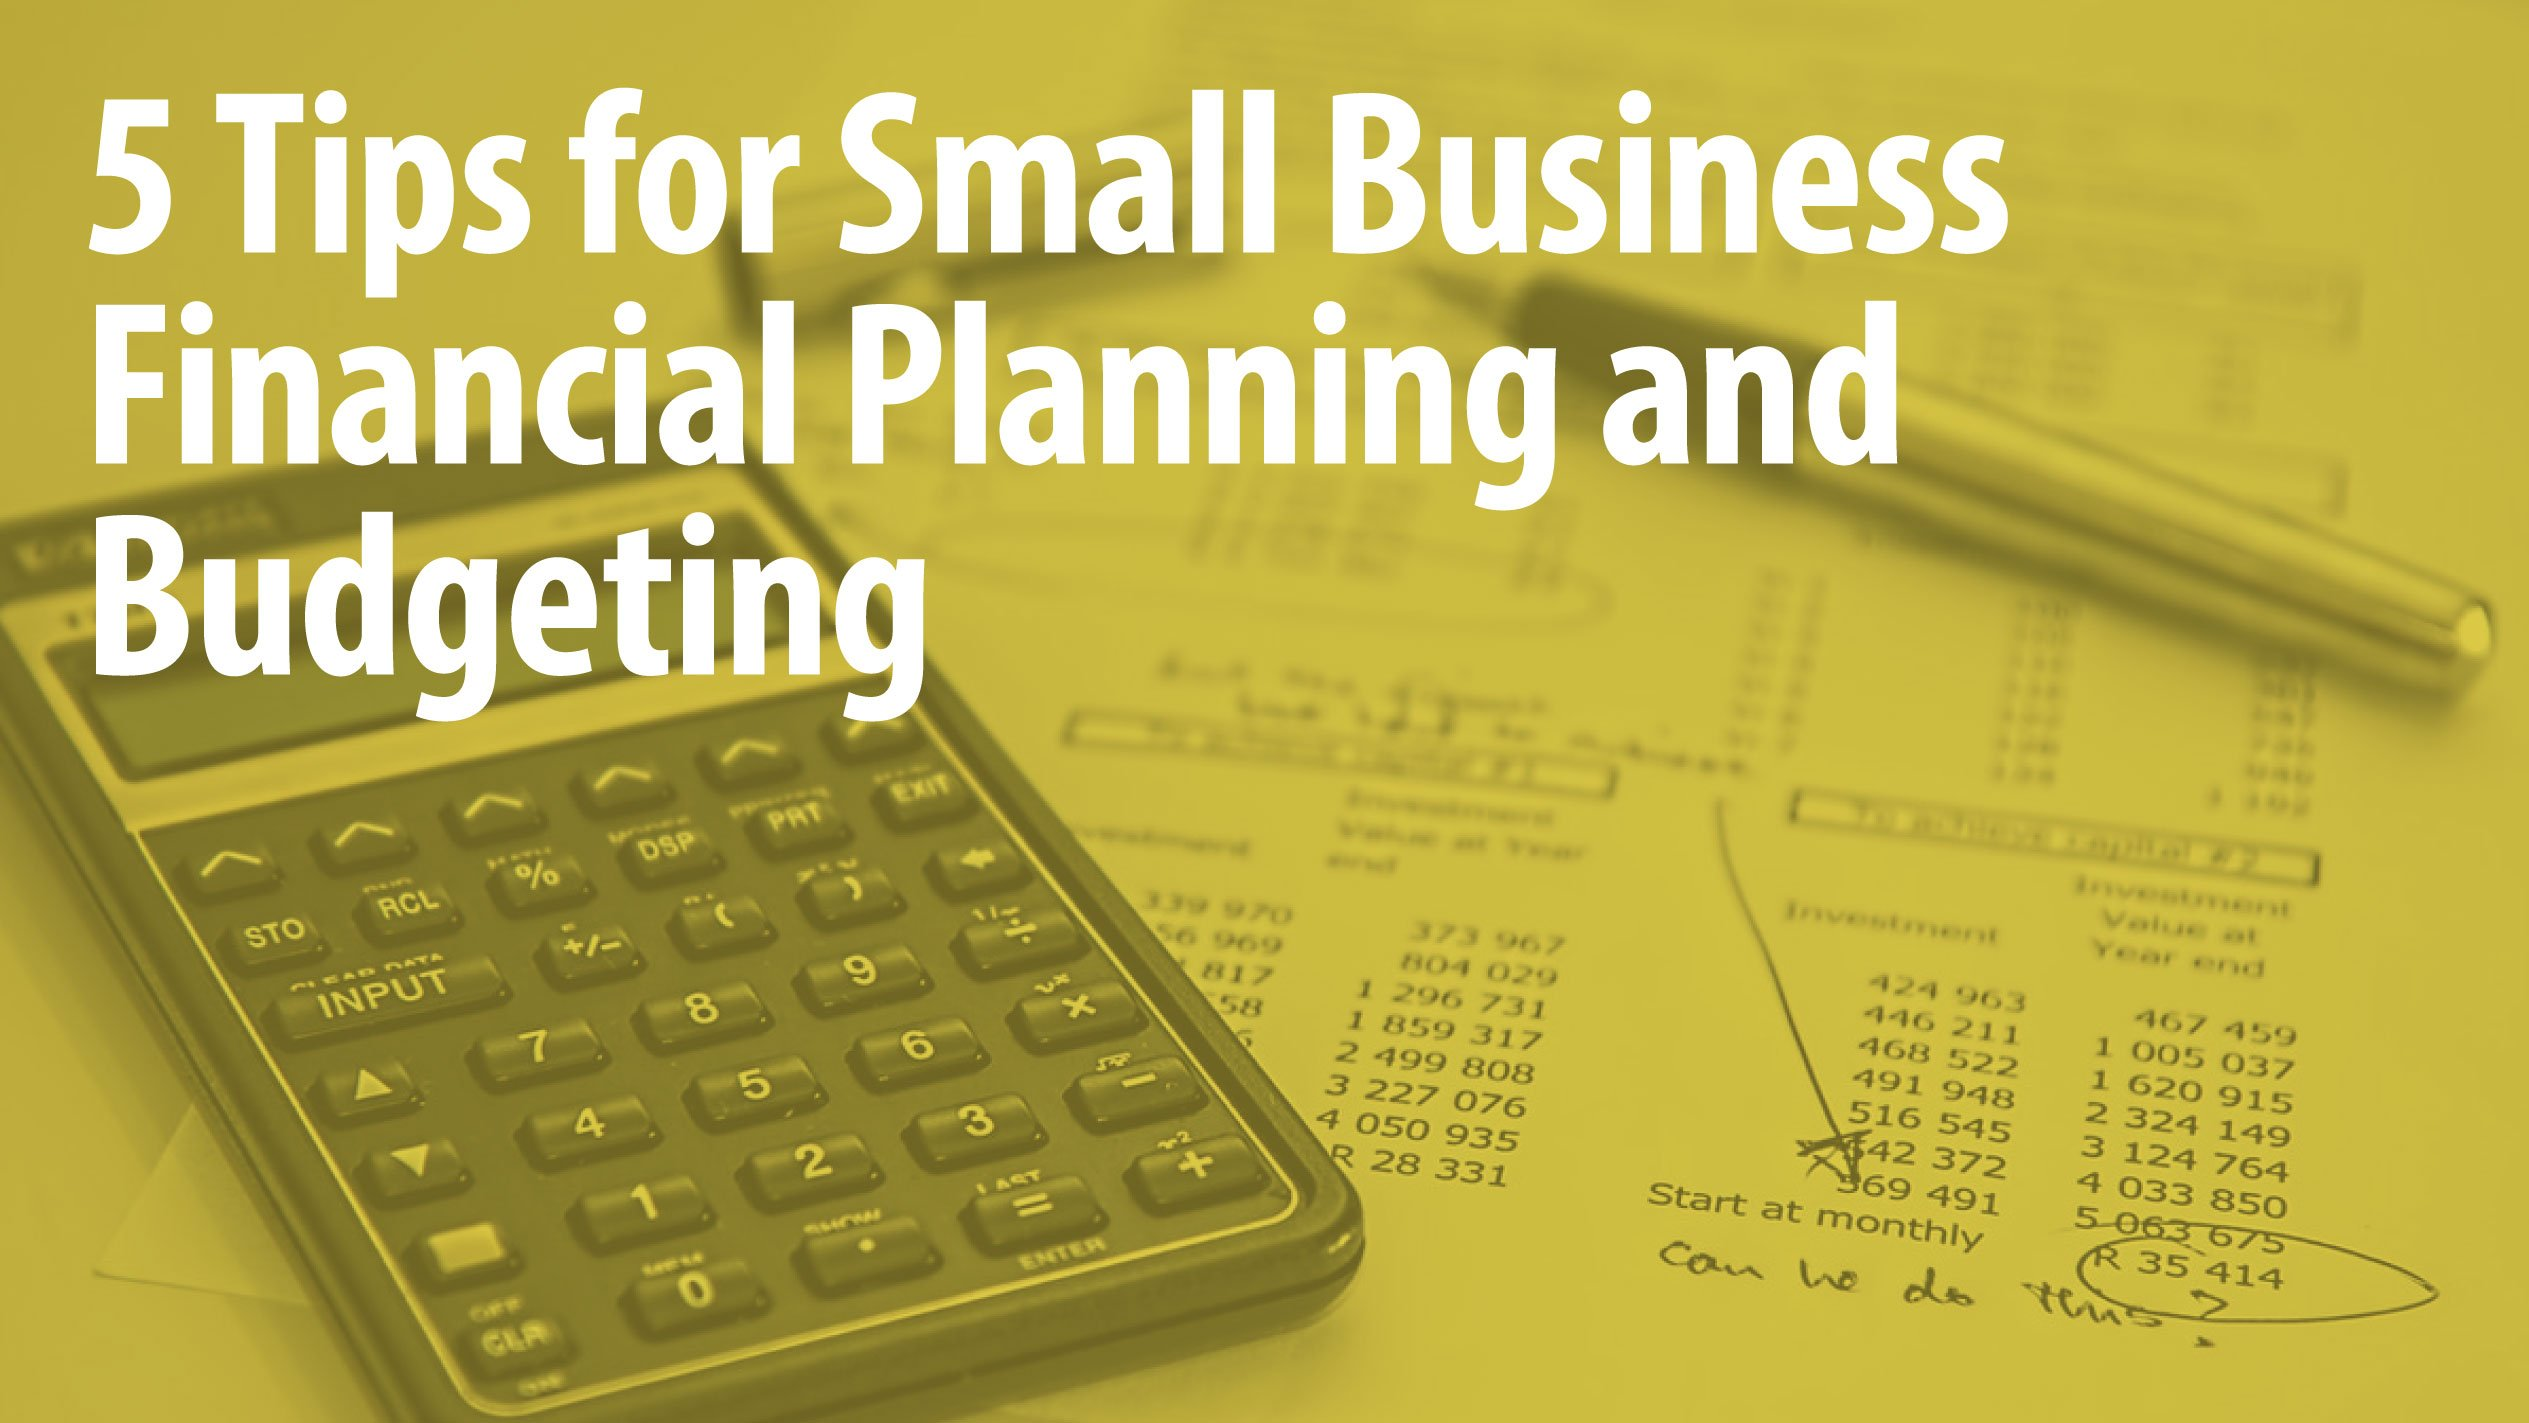 5 Tips for Small Business Financial Planning and Budgeting